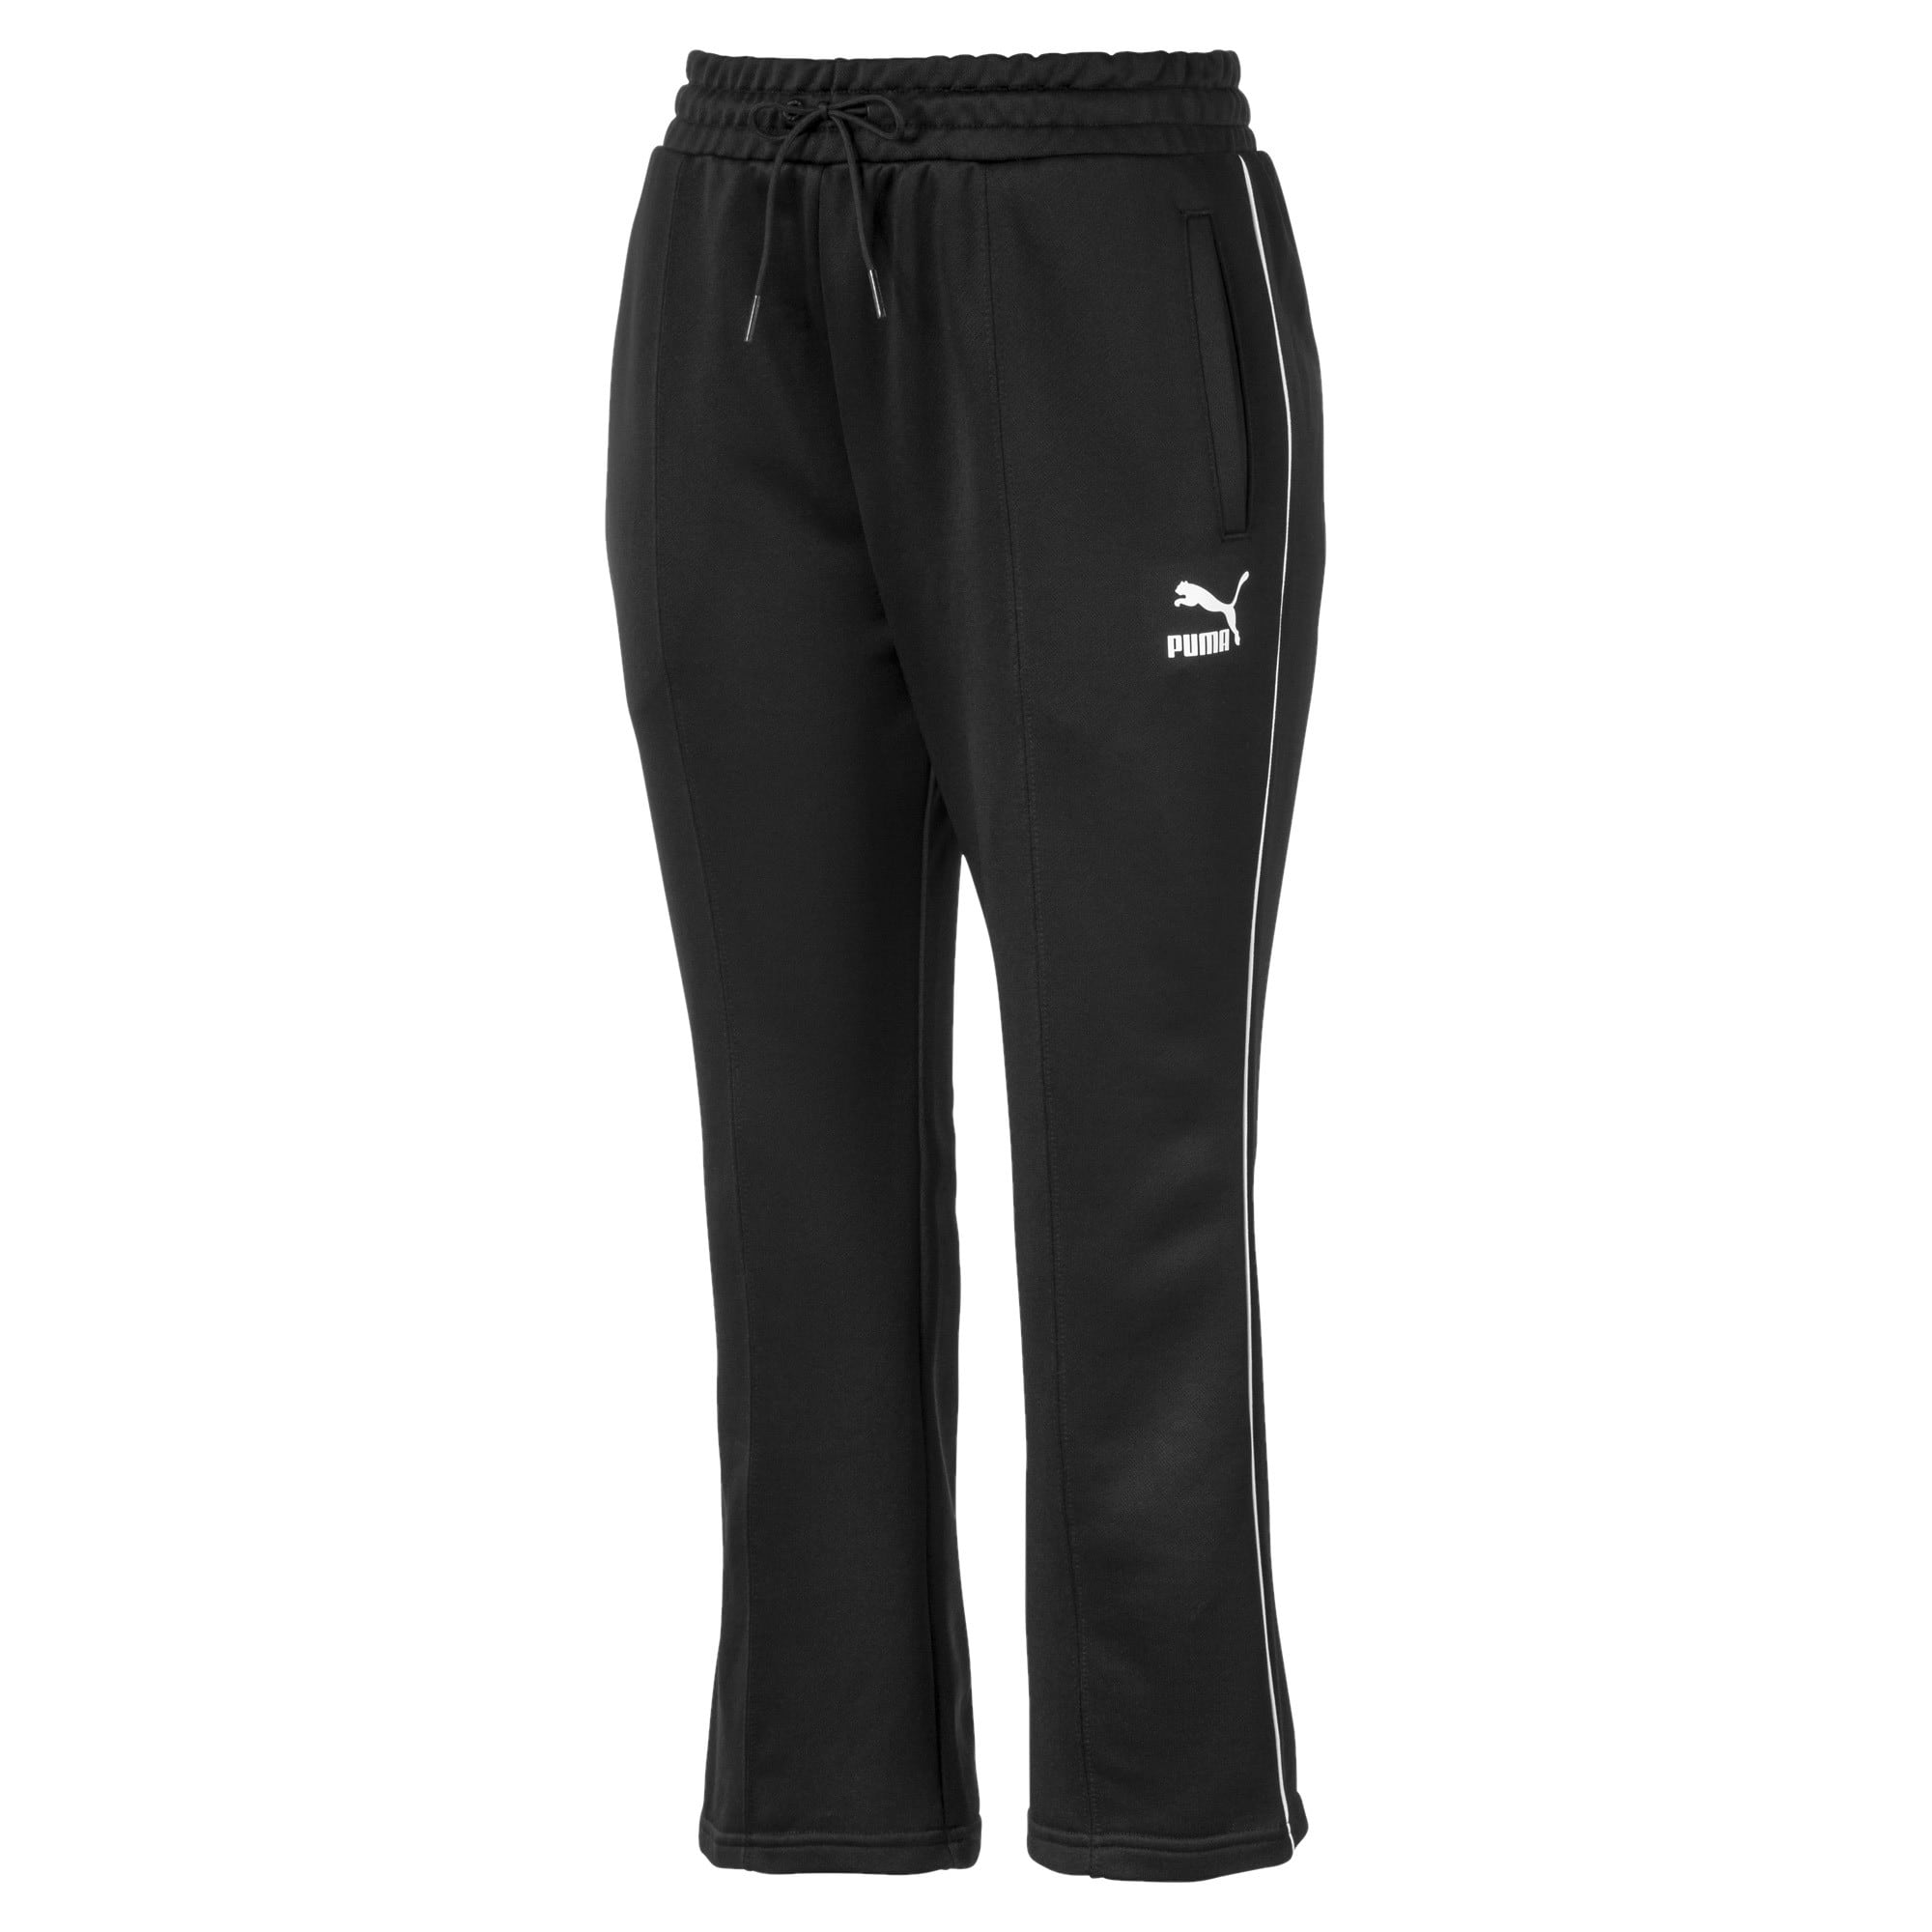 Thumbnail 4 of Classics Kick Flare Knitted Women's Pants, Puma Black, medium